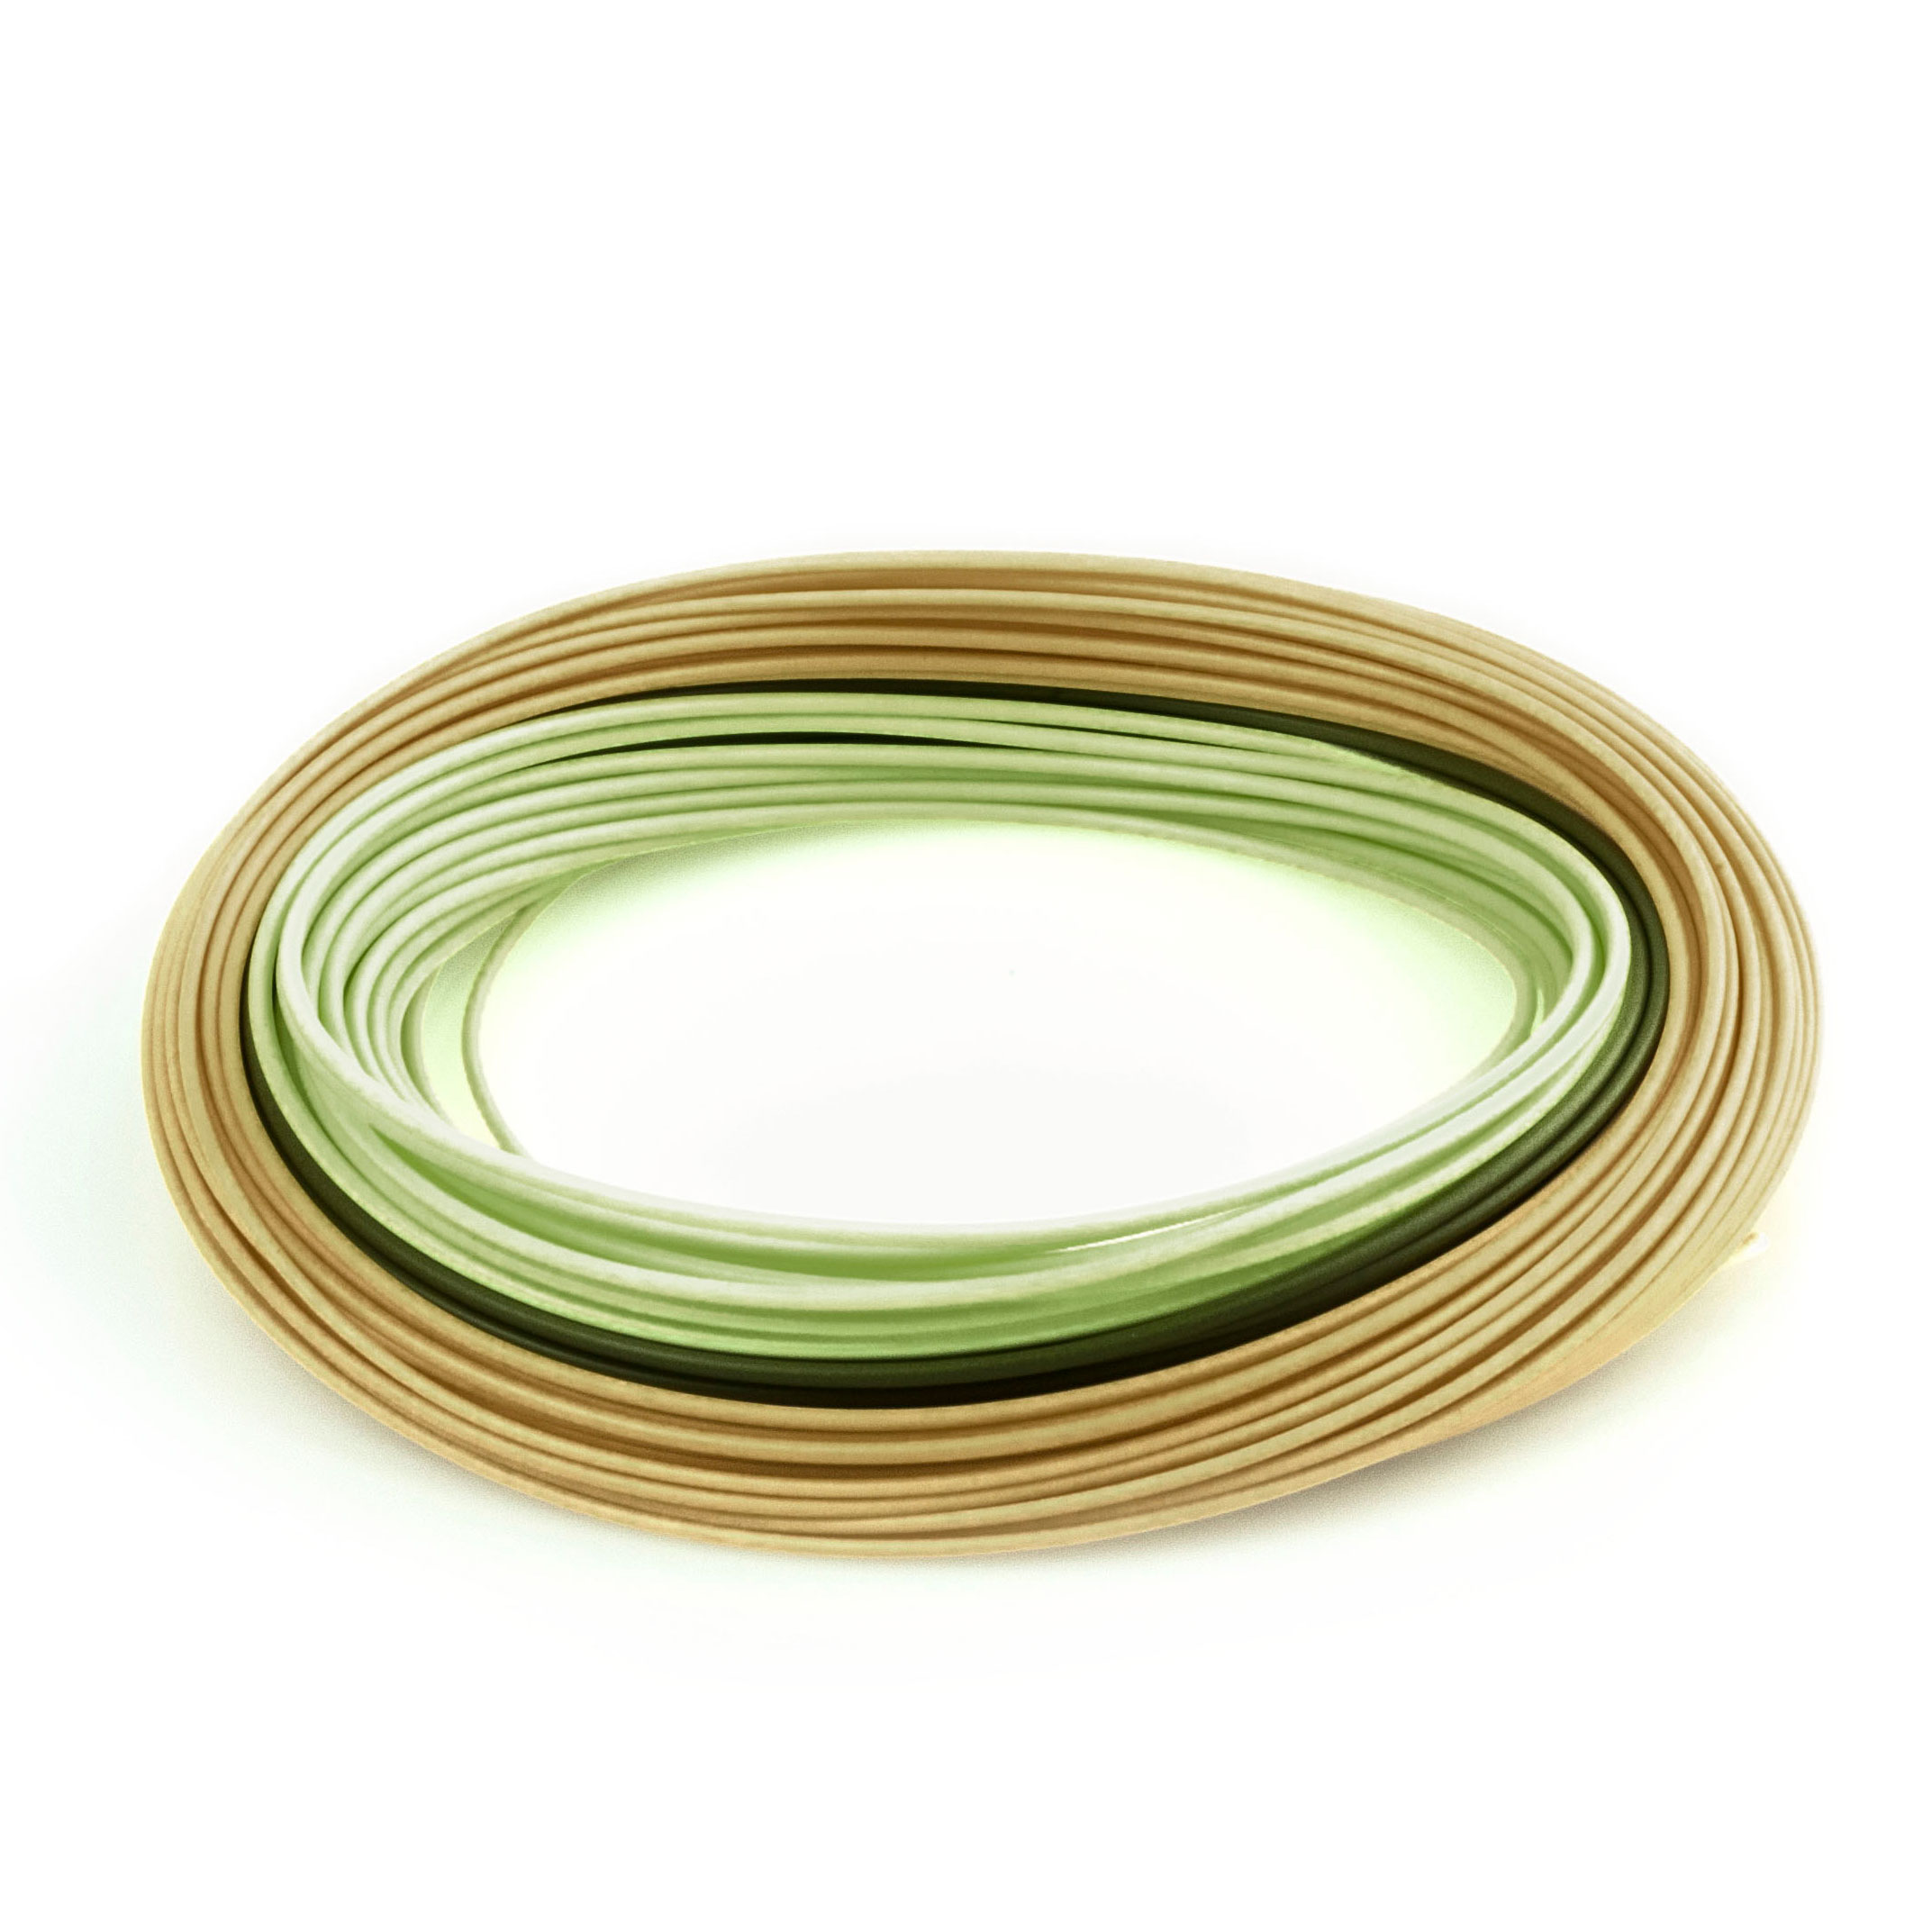 Rio perception fly line floating accurate angling for Floating fishing line